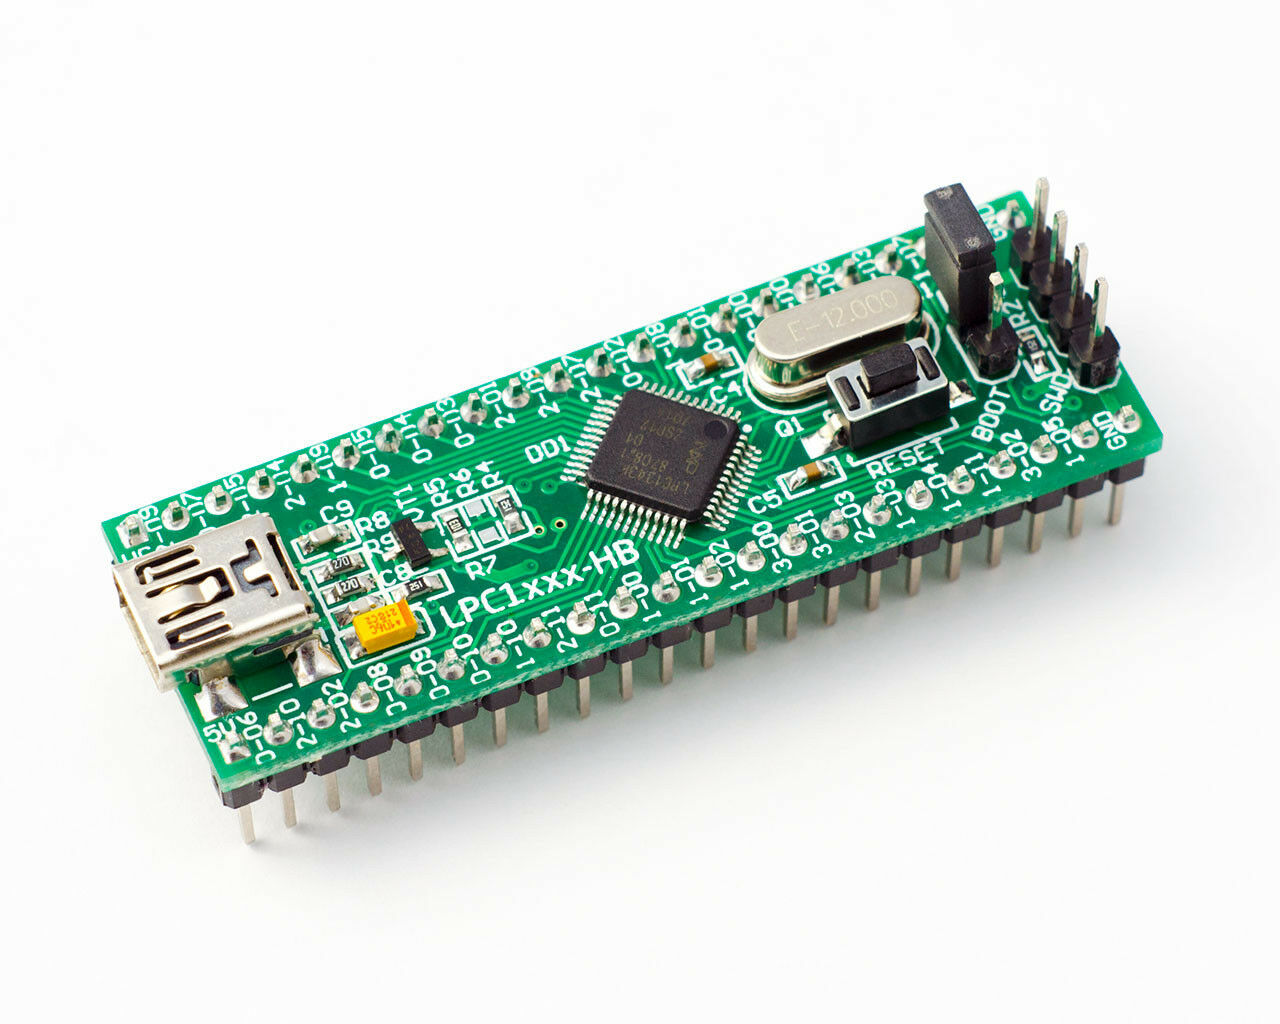 Lpc1343 Hb Header Dip Board With Usb Botloader Swd Connector Arm 10 Pcs 50mmx70mm Single Side Copper Cover Pcb Circuit Stripboard 1 Of 4only 2 Available